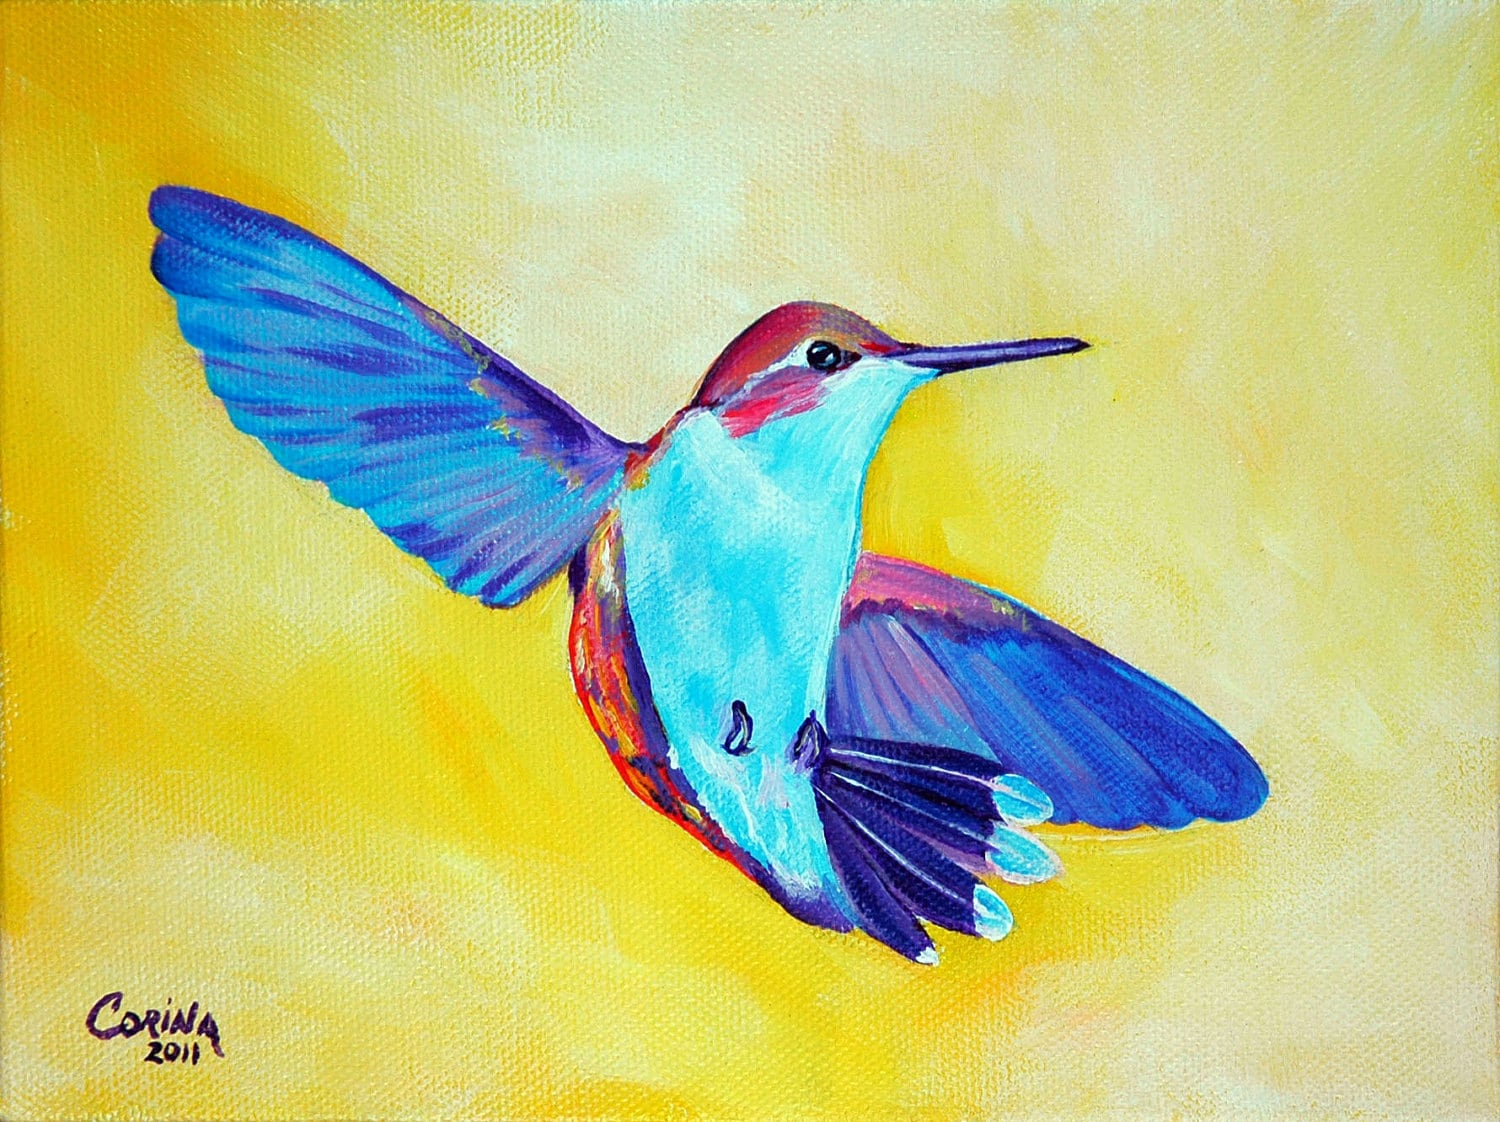 Hummingbird Wildlife Art Original Acrylic Painting on Canvas